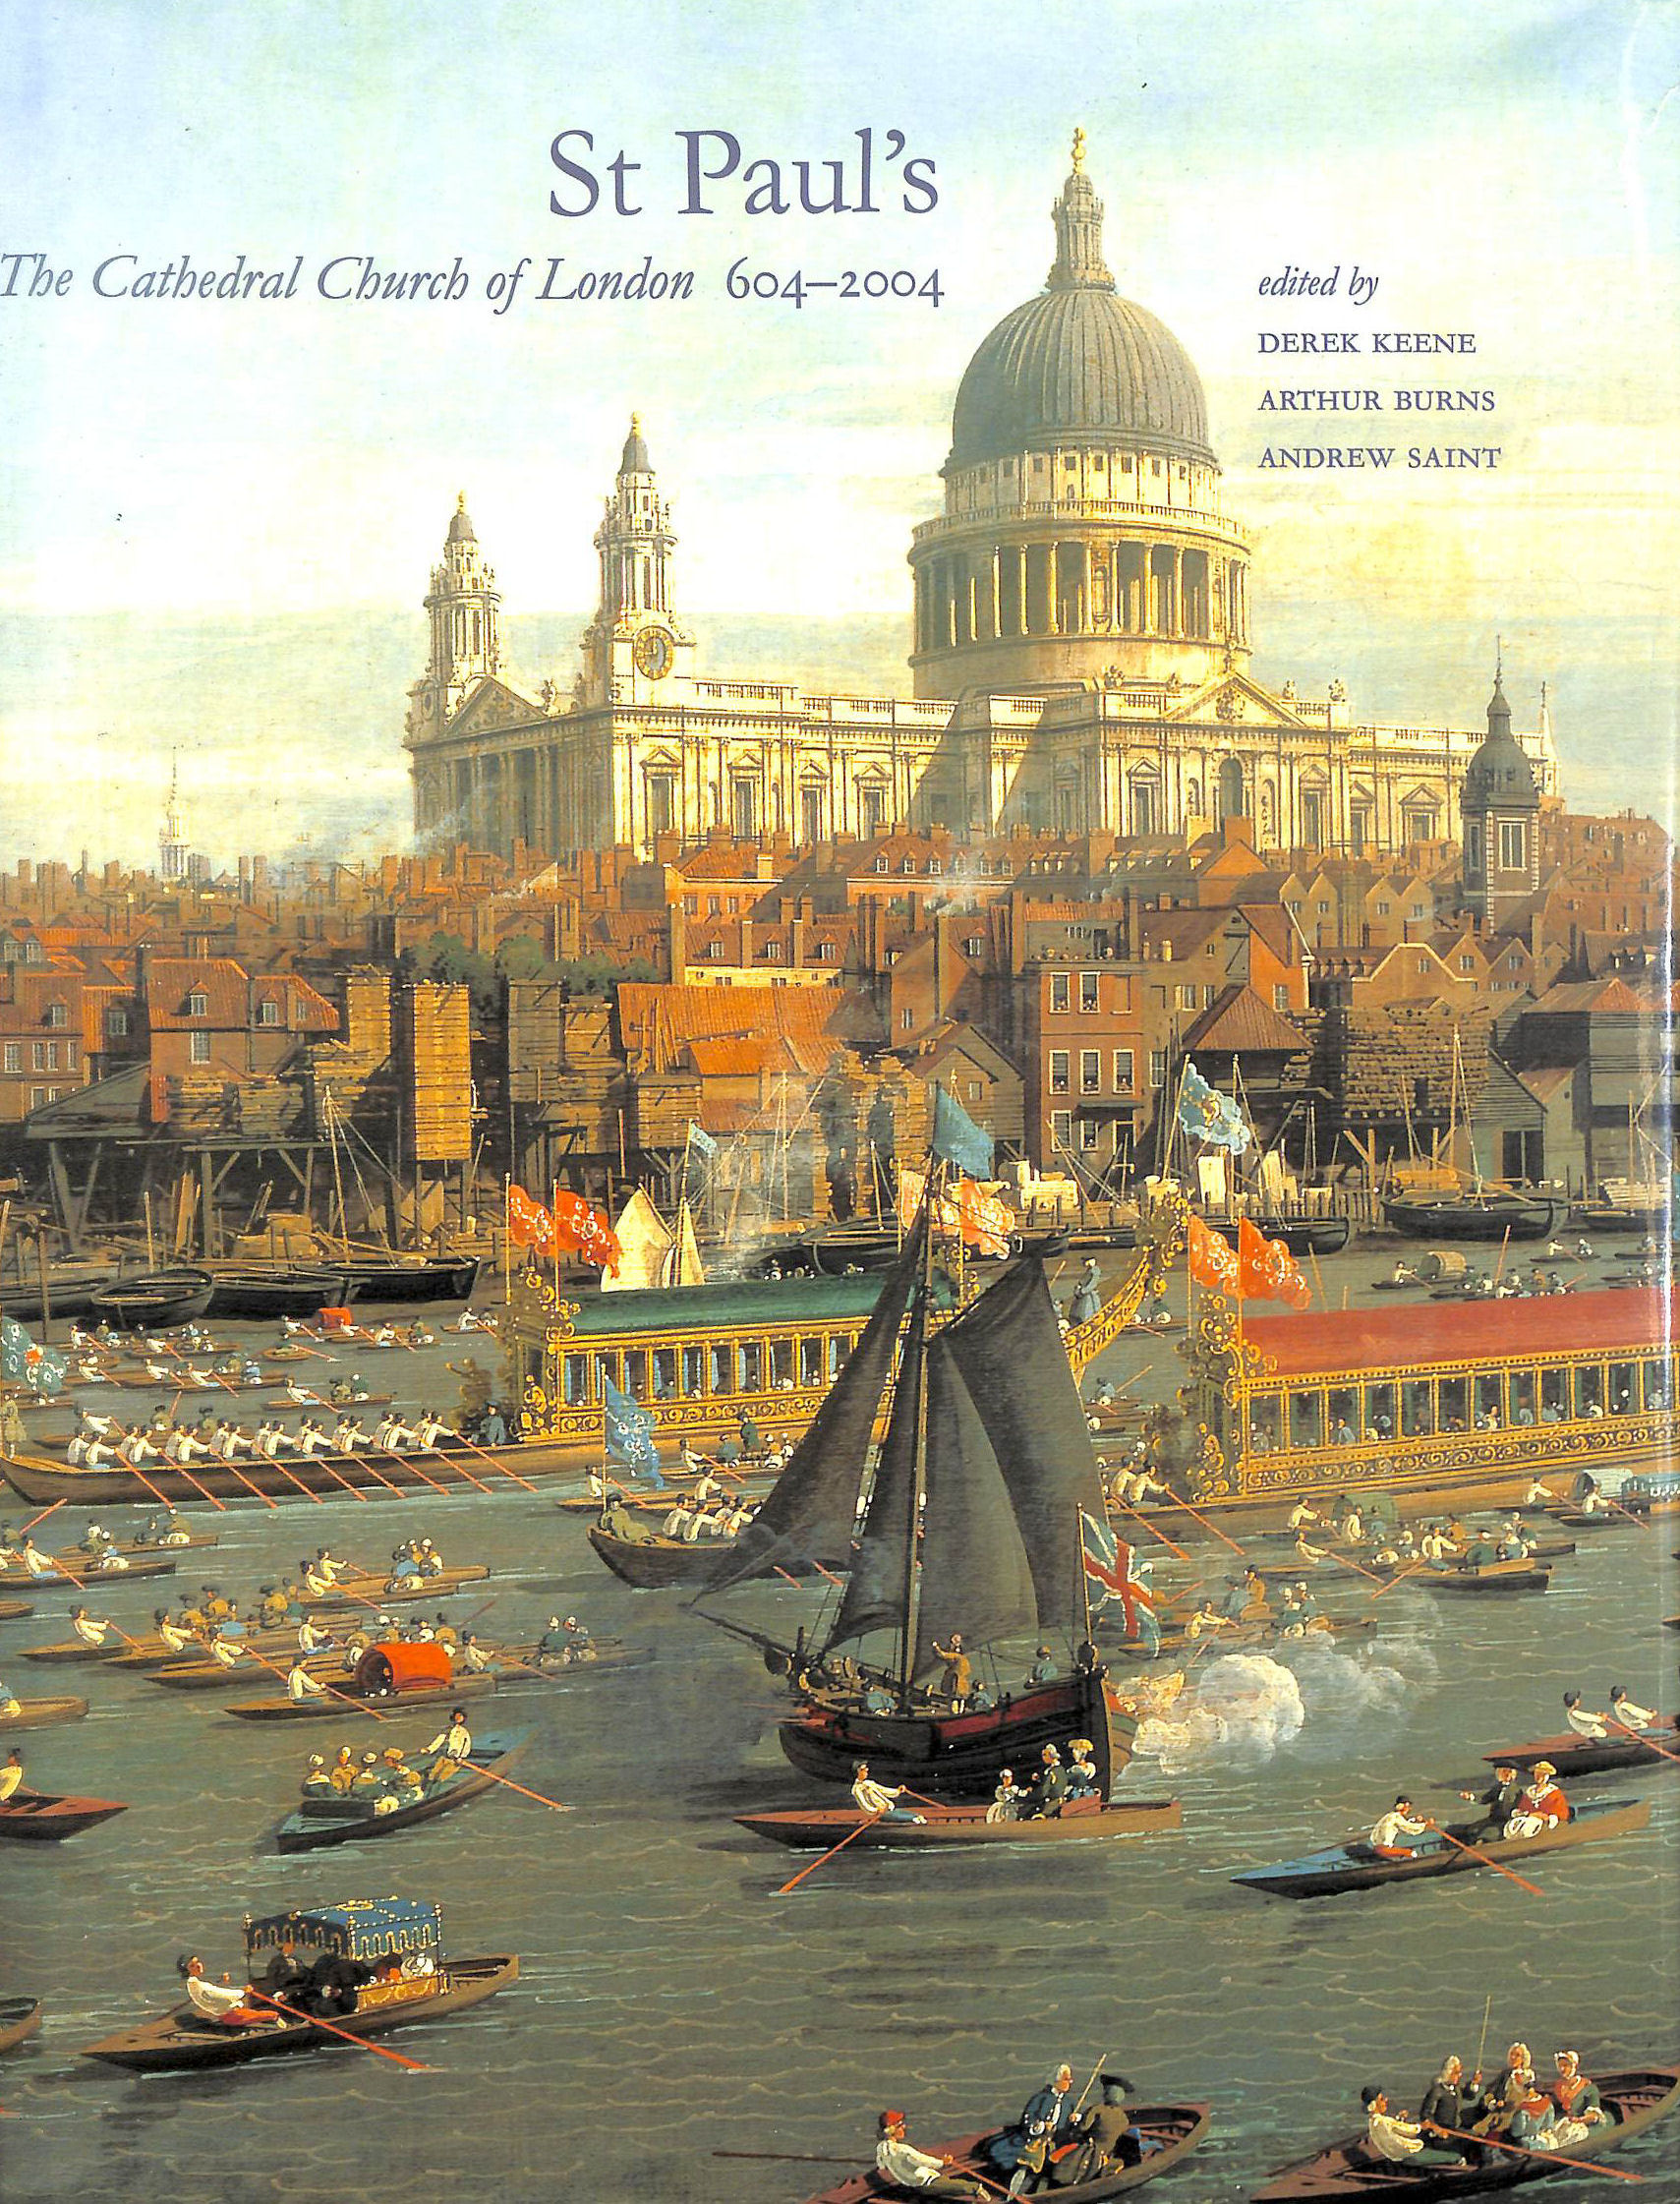 Image for St. Paul's: The Cathedral Church of London 604-2004 (Yale Center for British Art)